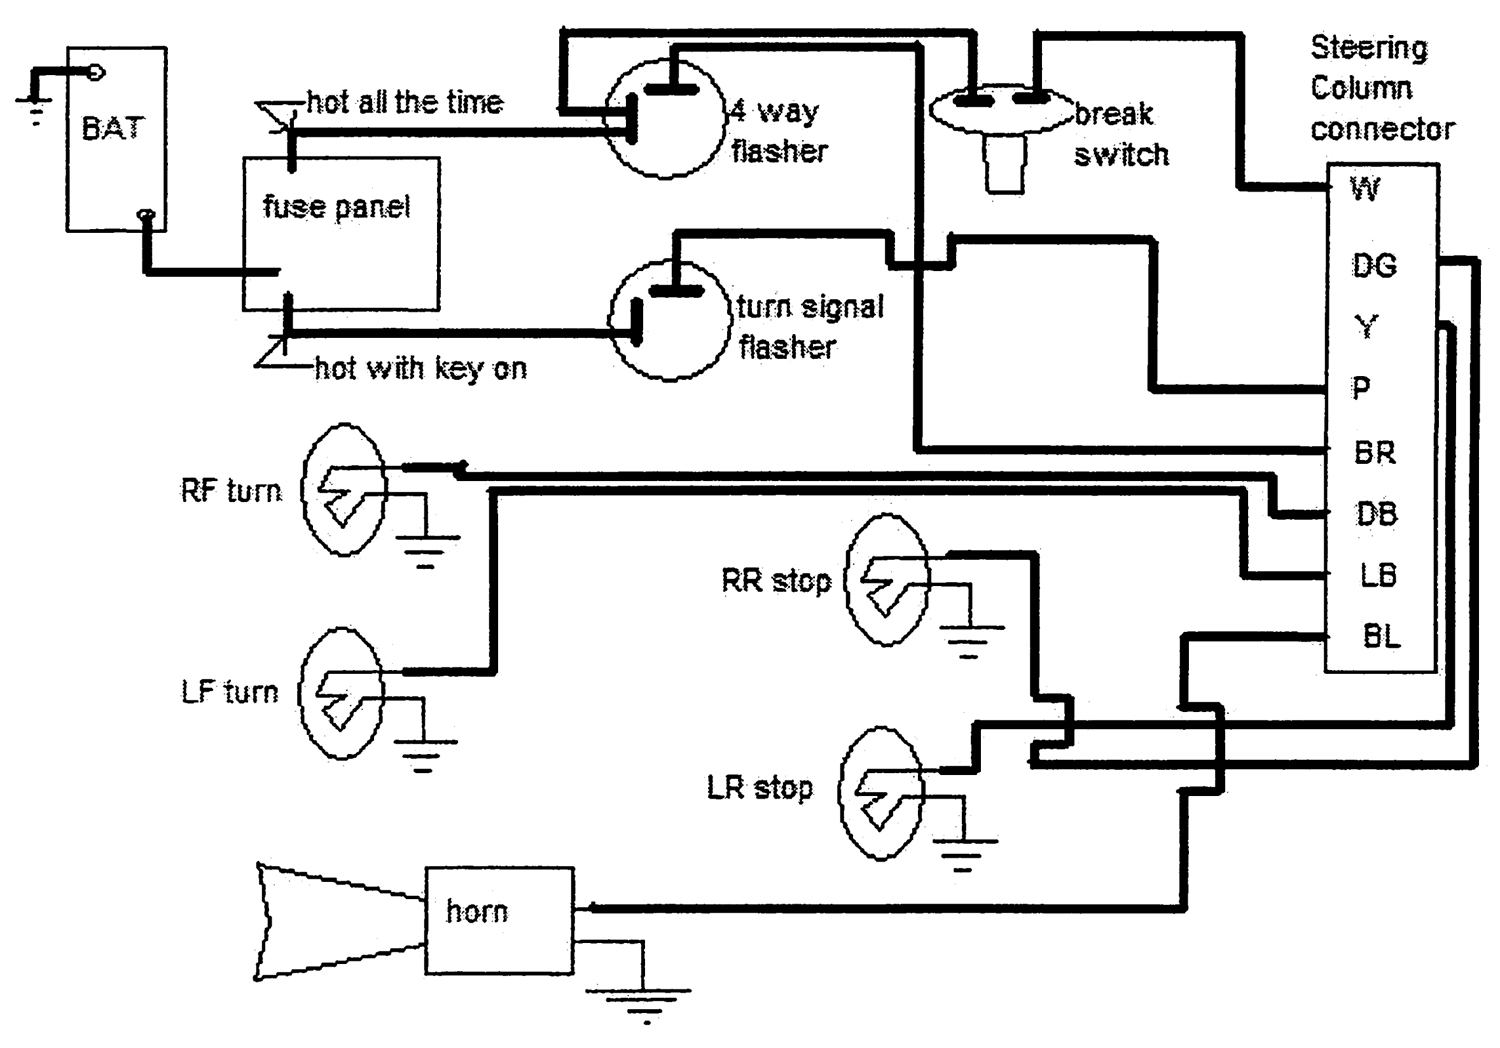 Brake Wiring Diagram For 99 Chevy